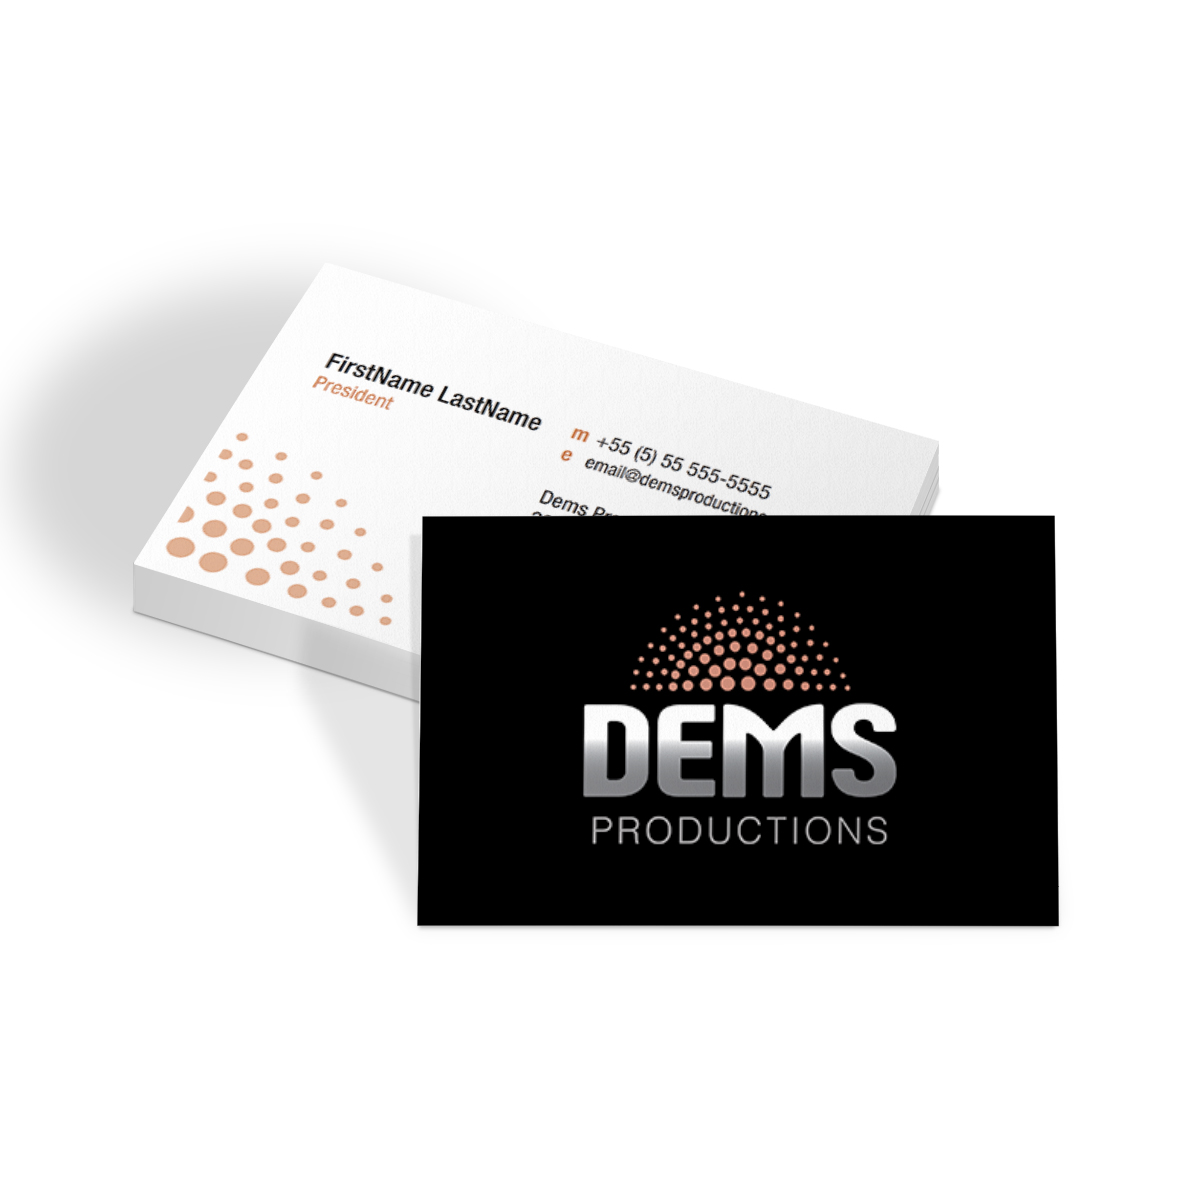 DEMS Production Business Cards